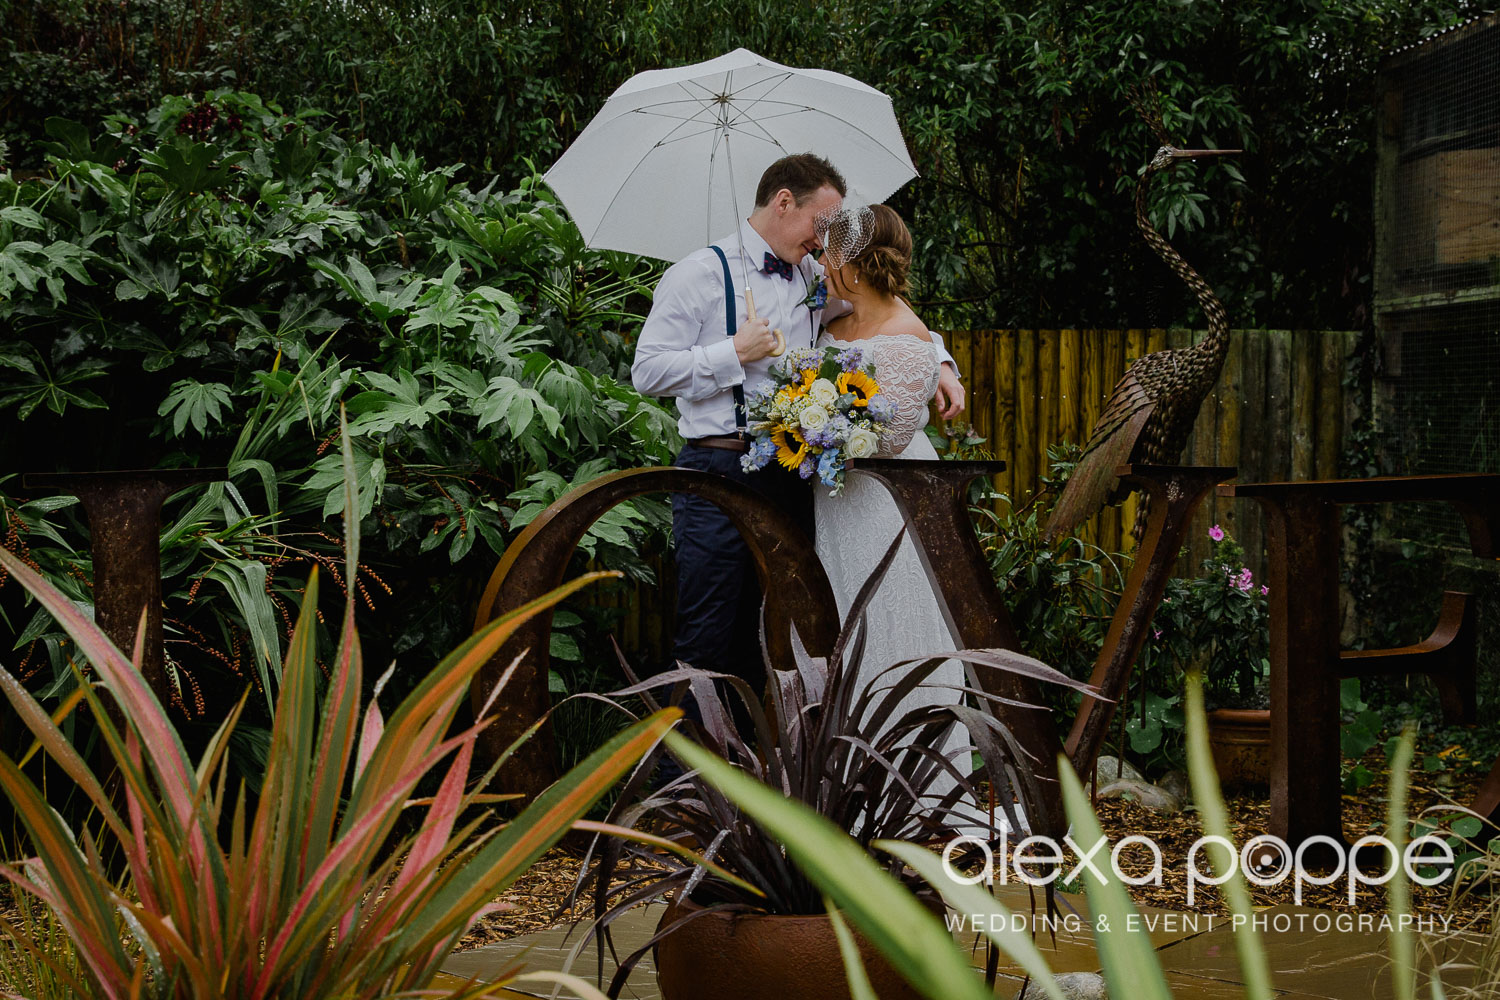 KM_elopement_lowerbarns_30.jpg